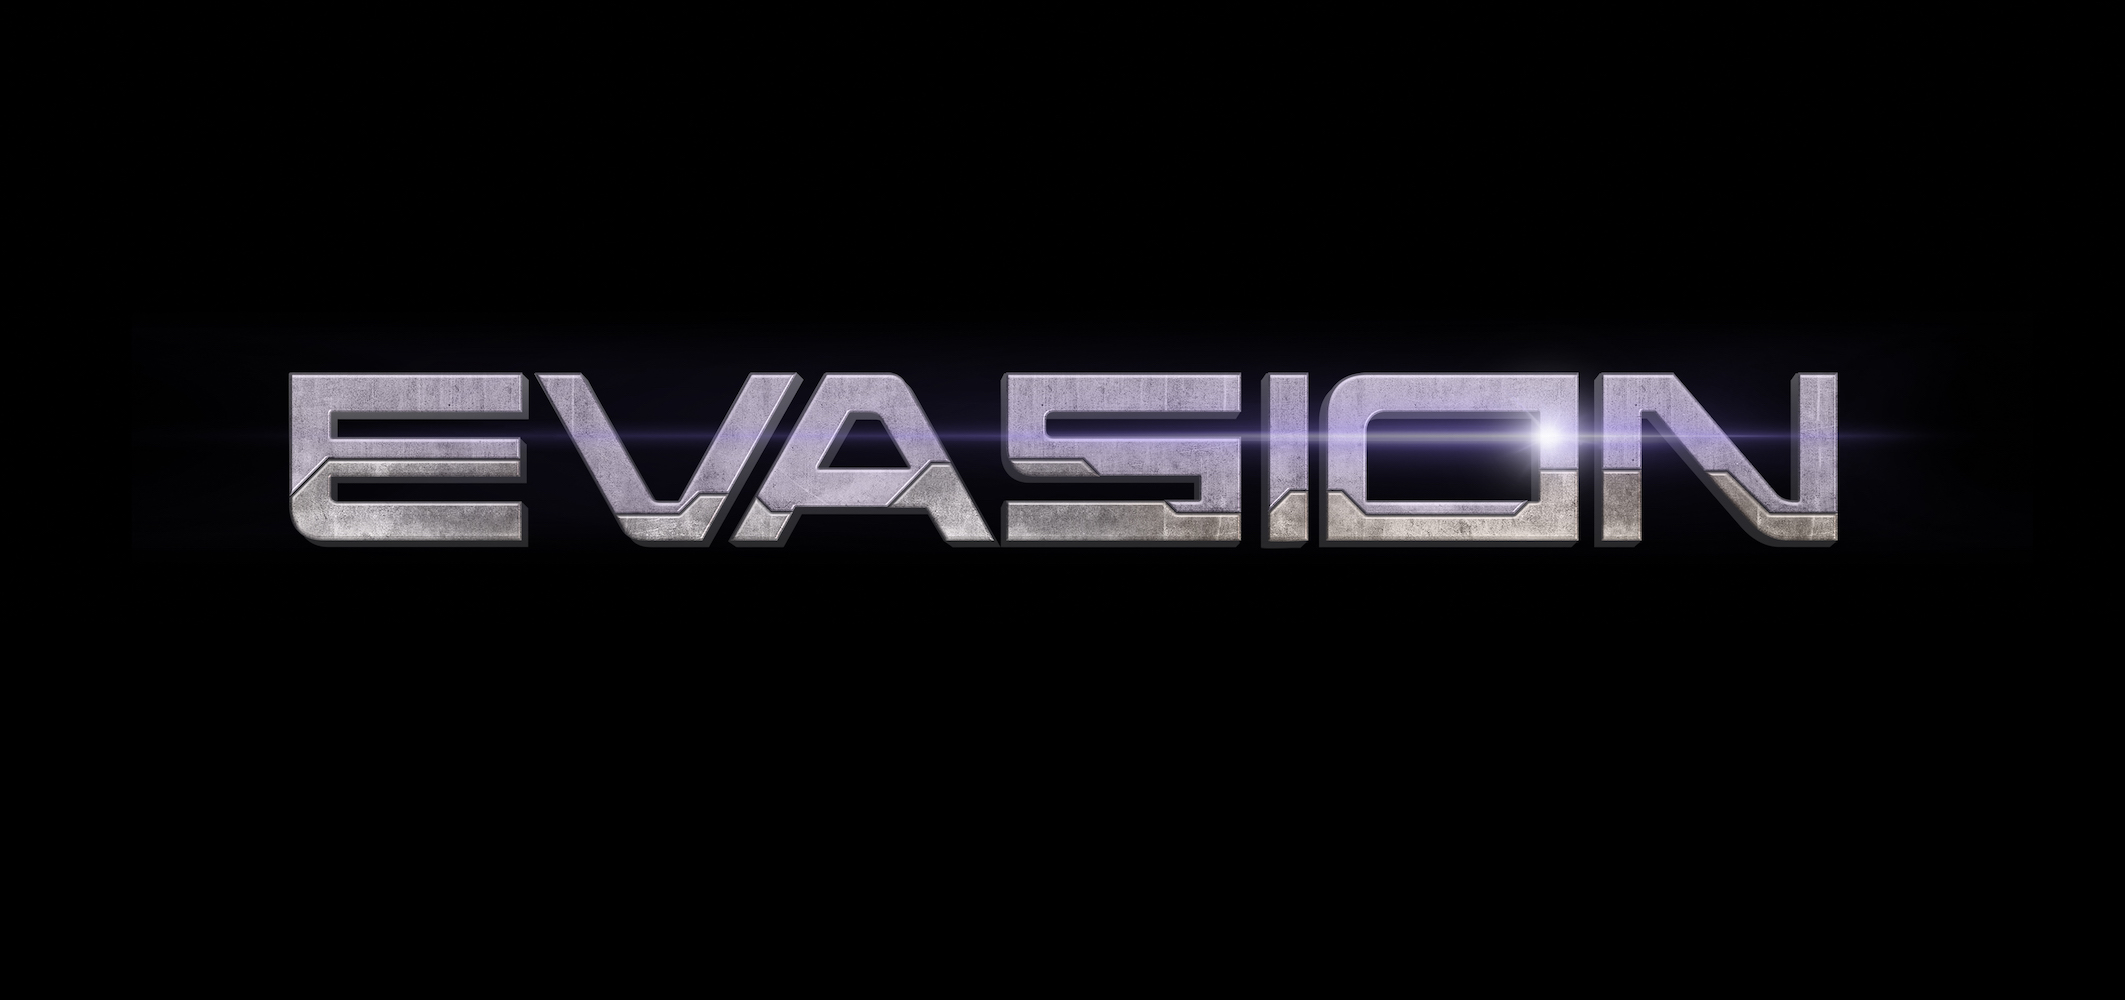 Upcoming Game 'Evasion' Looks To Be 'Destiny' Of VR